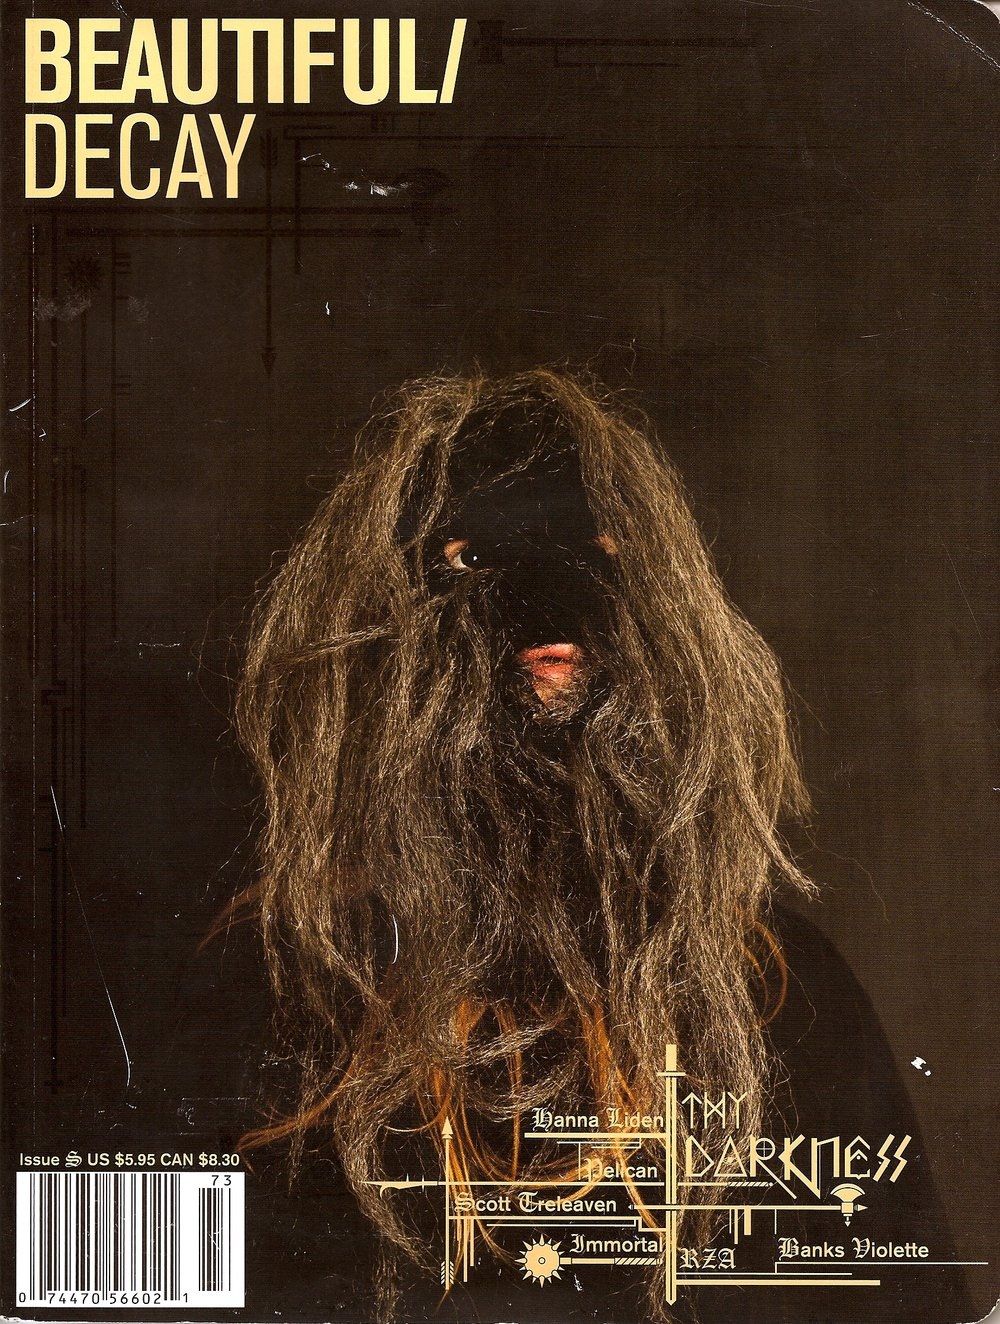 BeautifulDecay_June2007_1.jpg